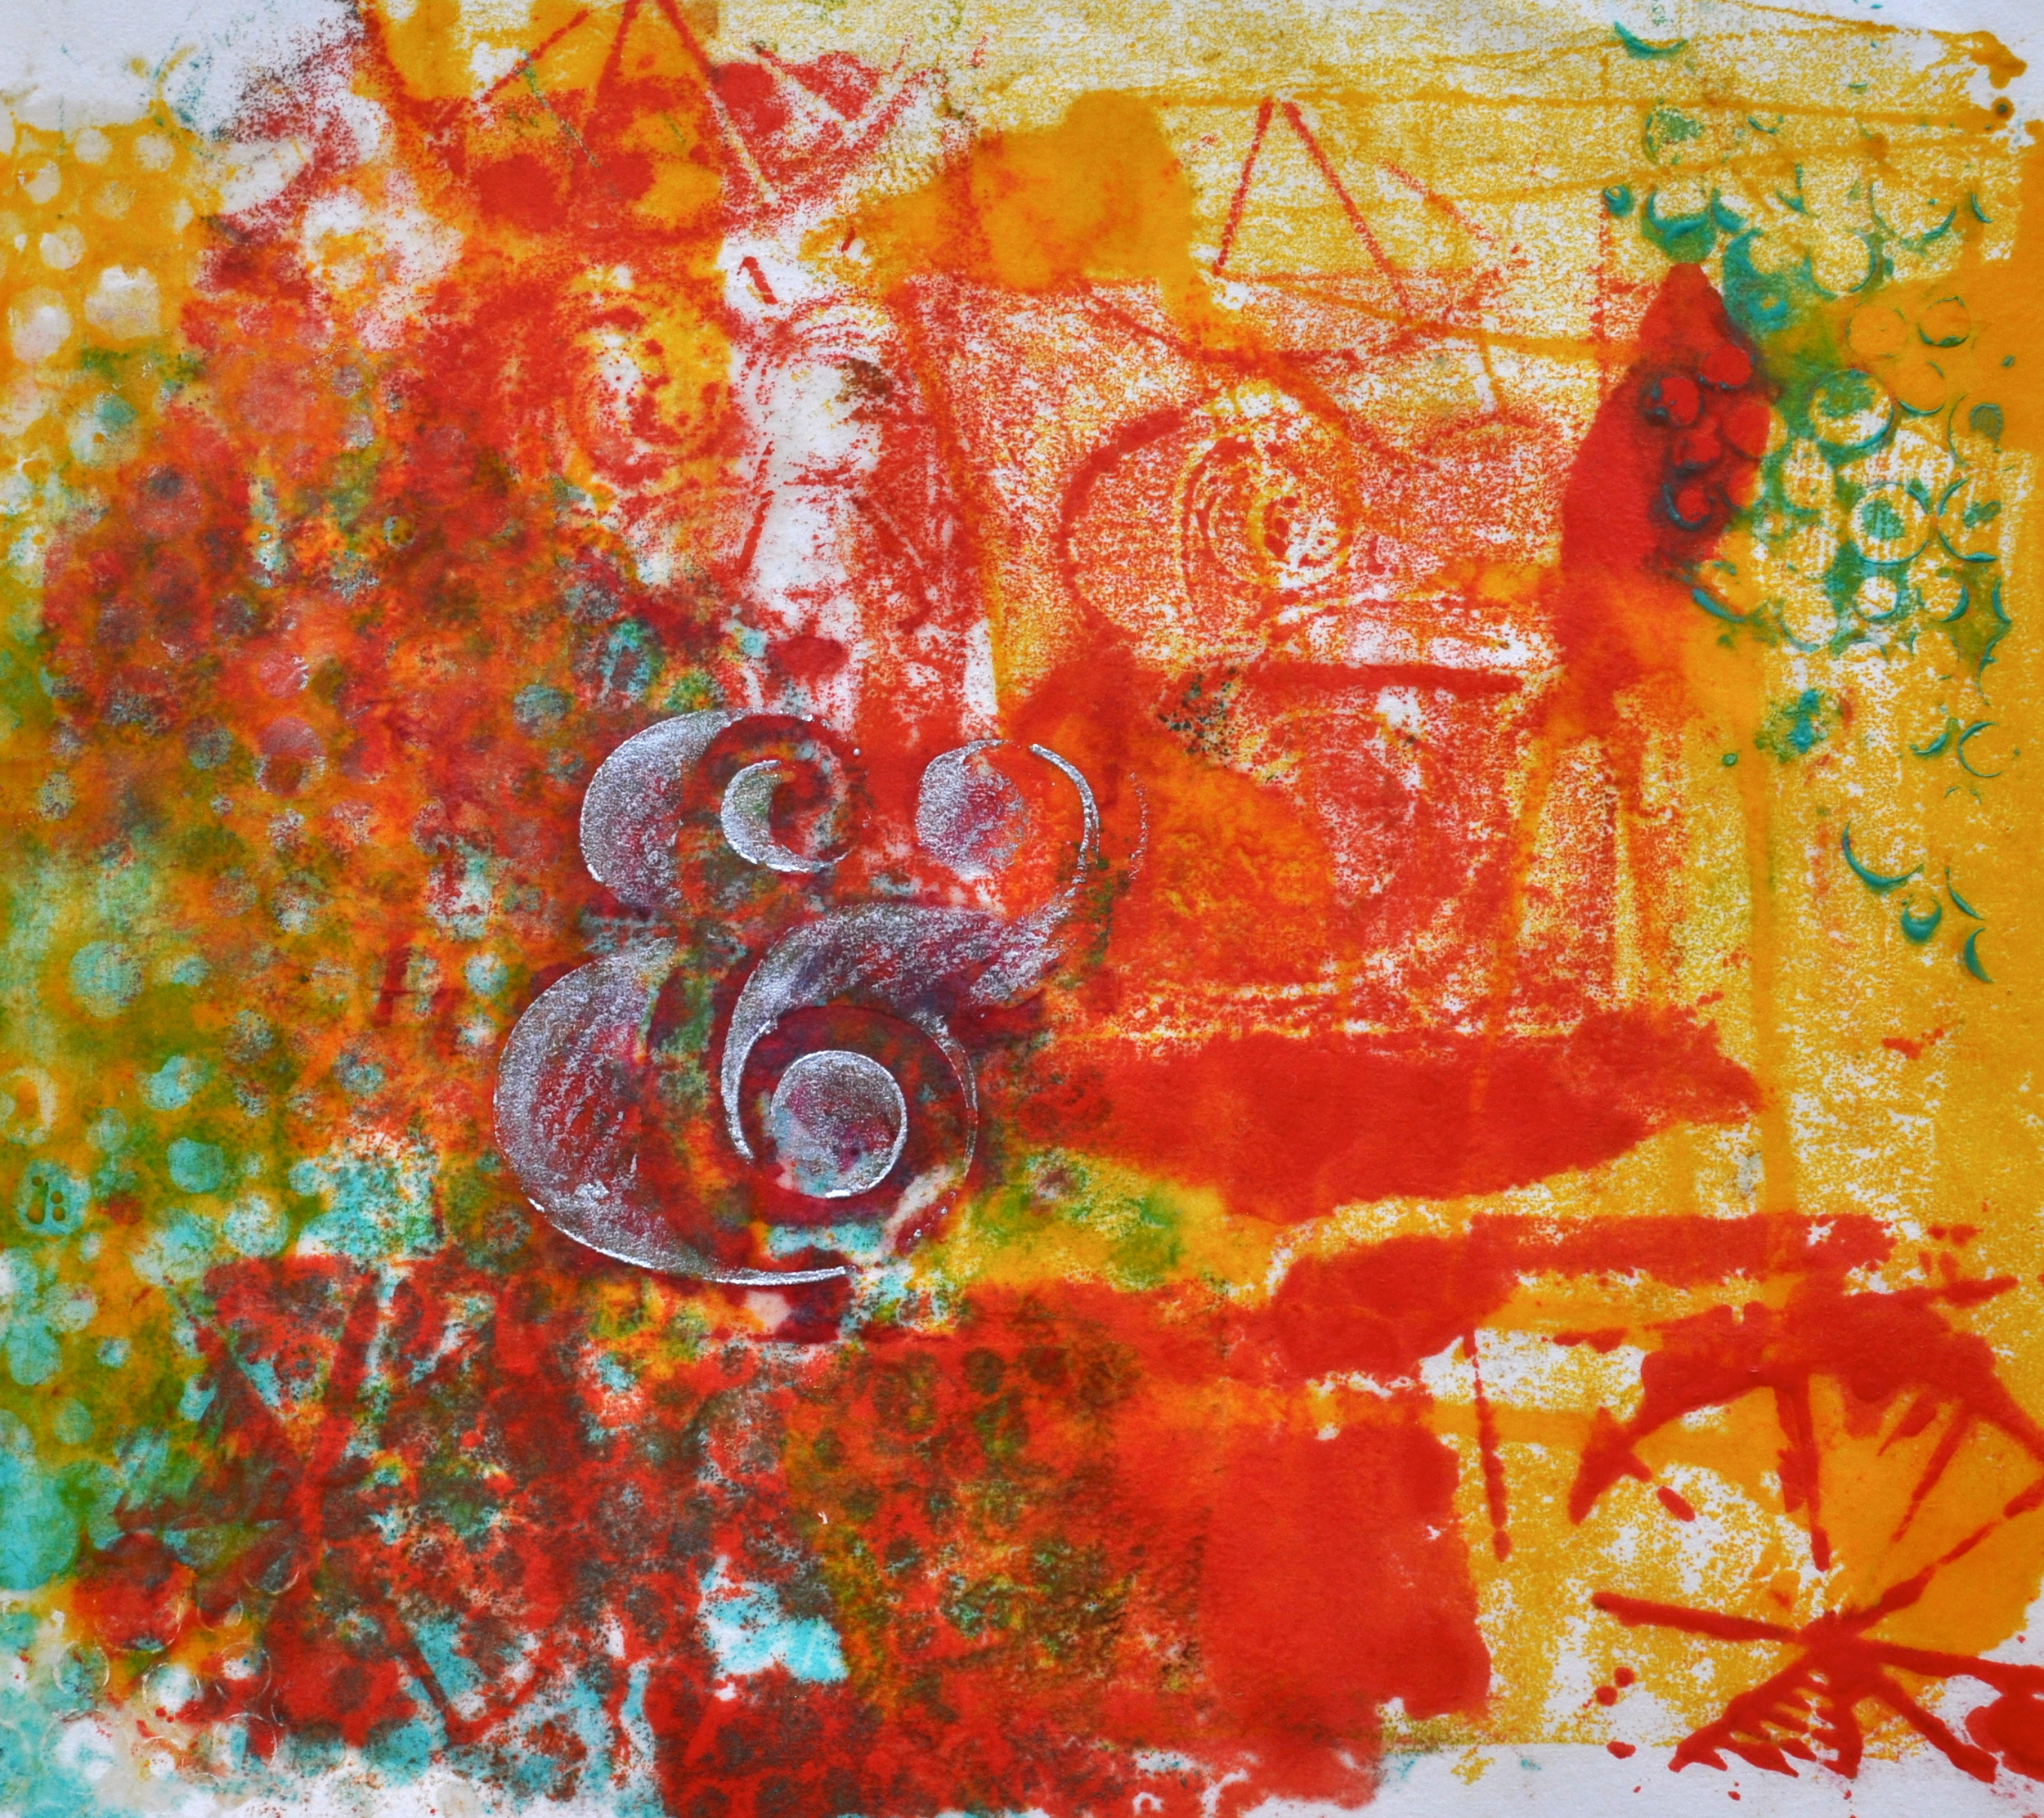 & with Circles encaustic, monotype & mixed media on paper, 8x6""